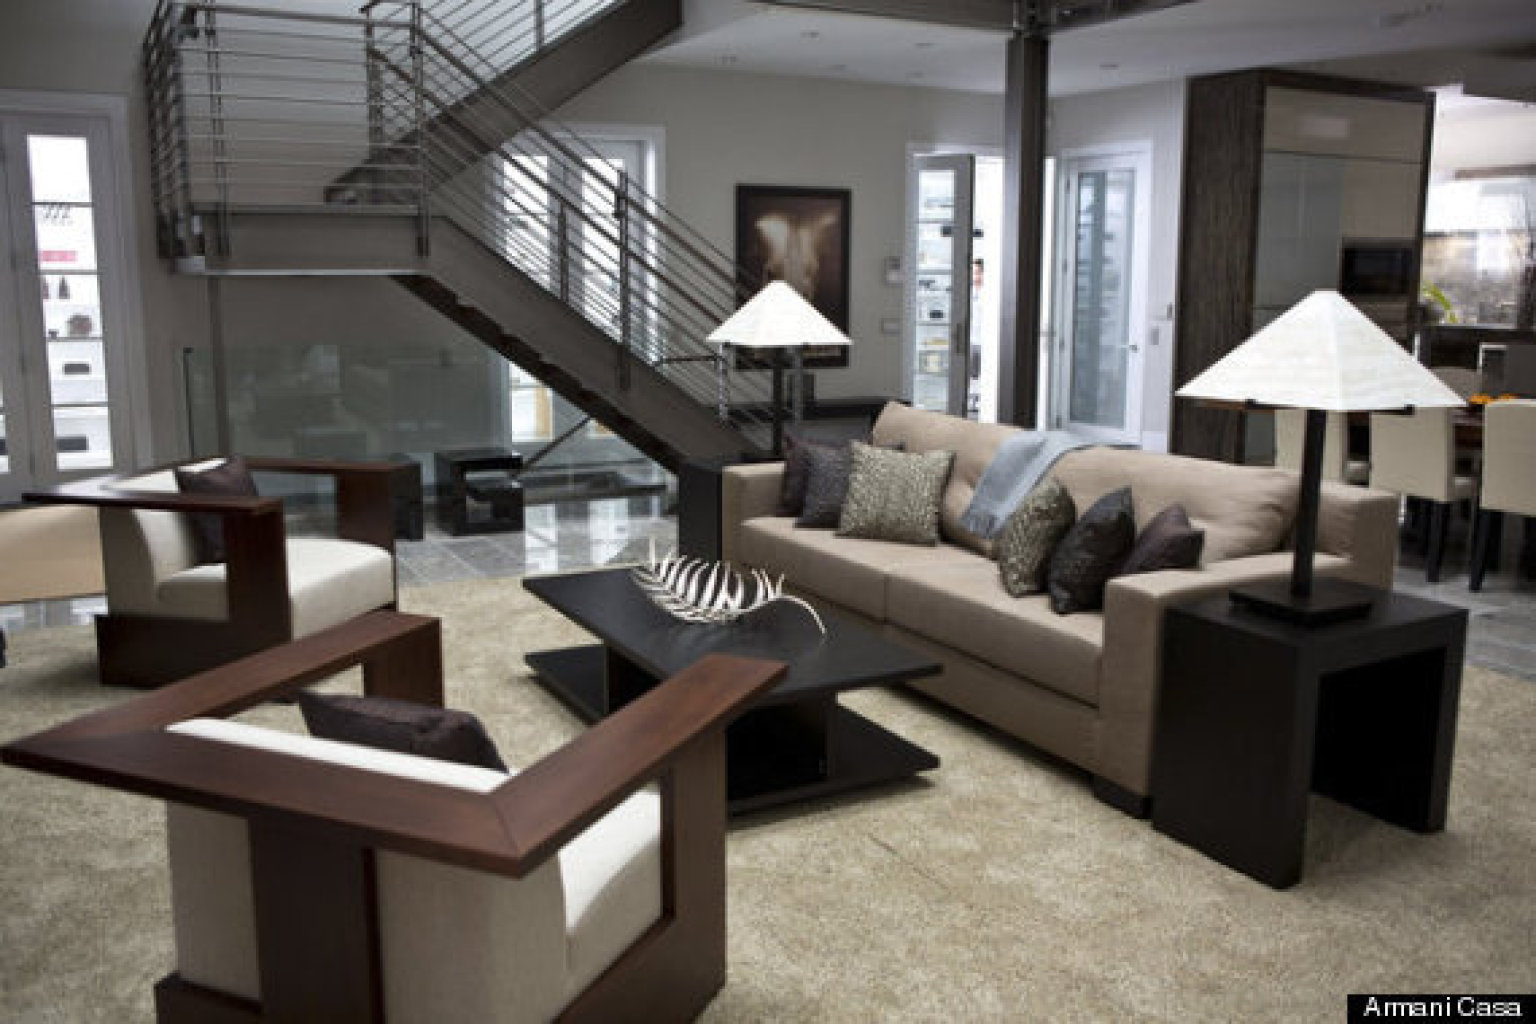 Armani casa giorgio armani 39 s decor line to be featured in new thriller 39 paranoia 39 photo - Armani casa espana ...